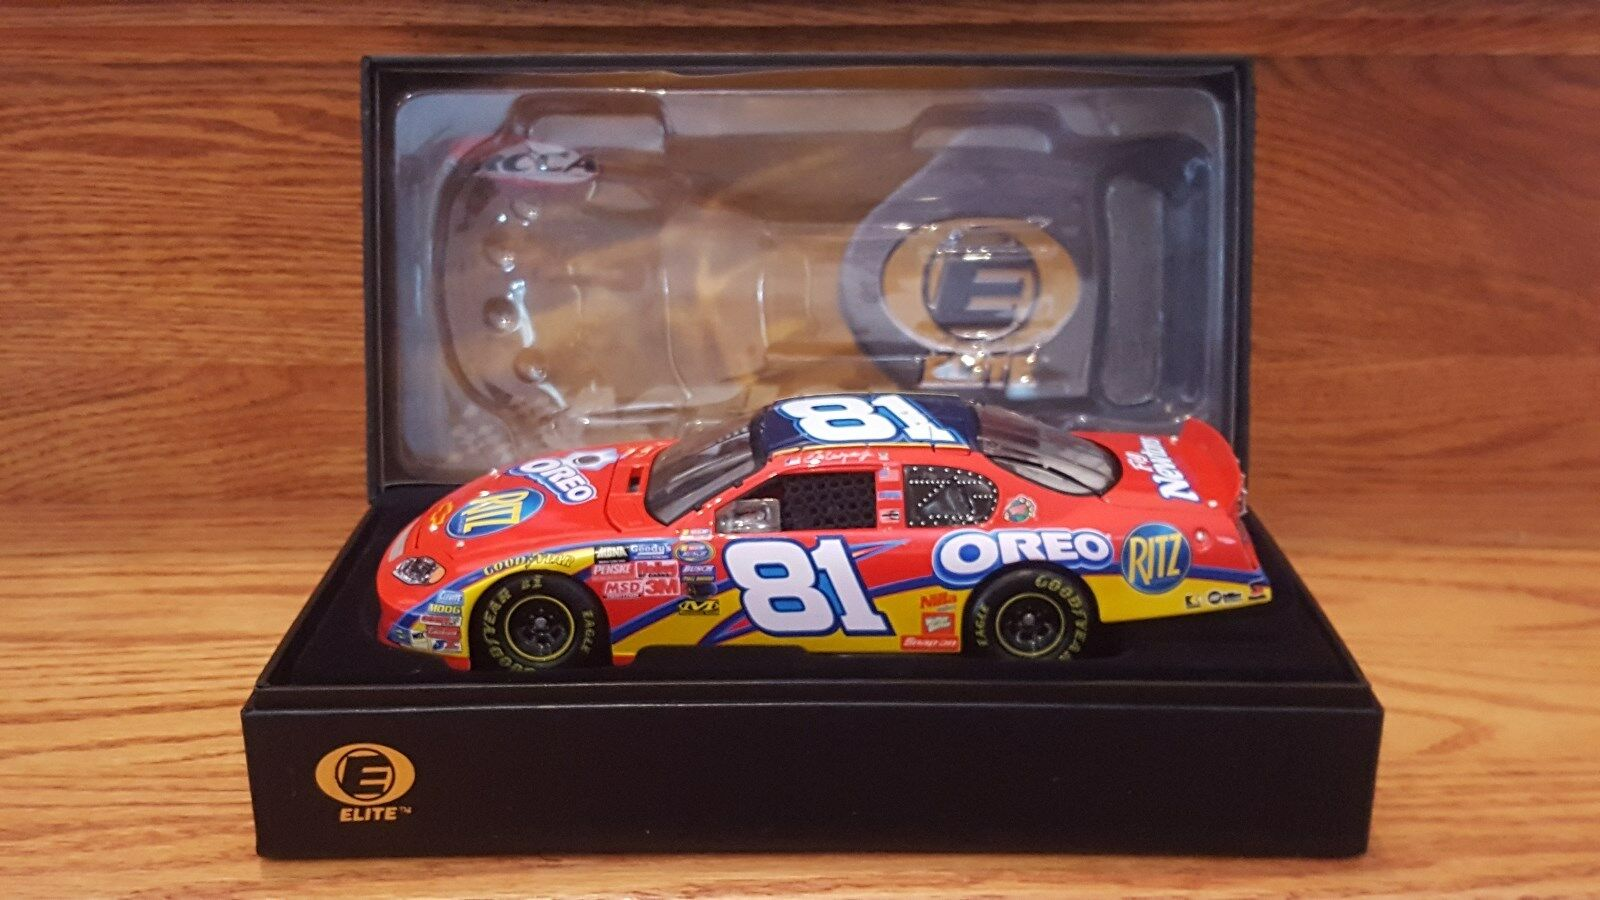 Dale Earnhardt Jr 2005  81 Oreo Ritz Chevy Monte Carlo Action Racing Collectables Club of America Elite 1 24